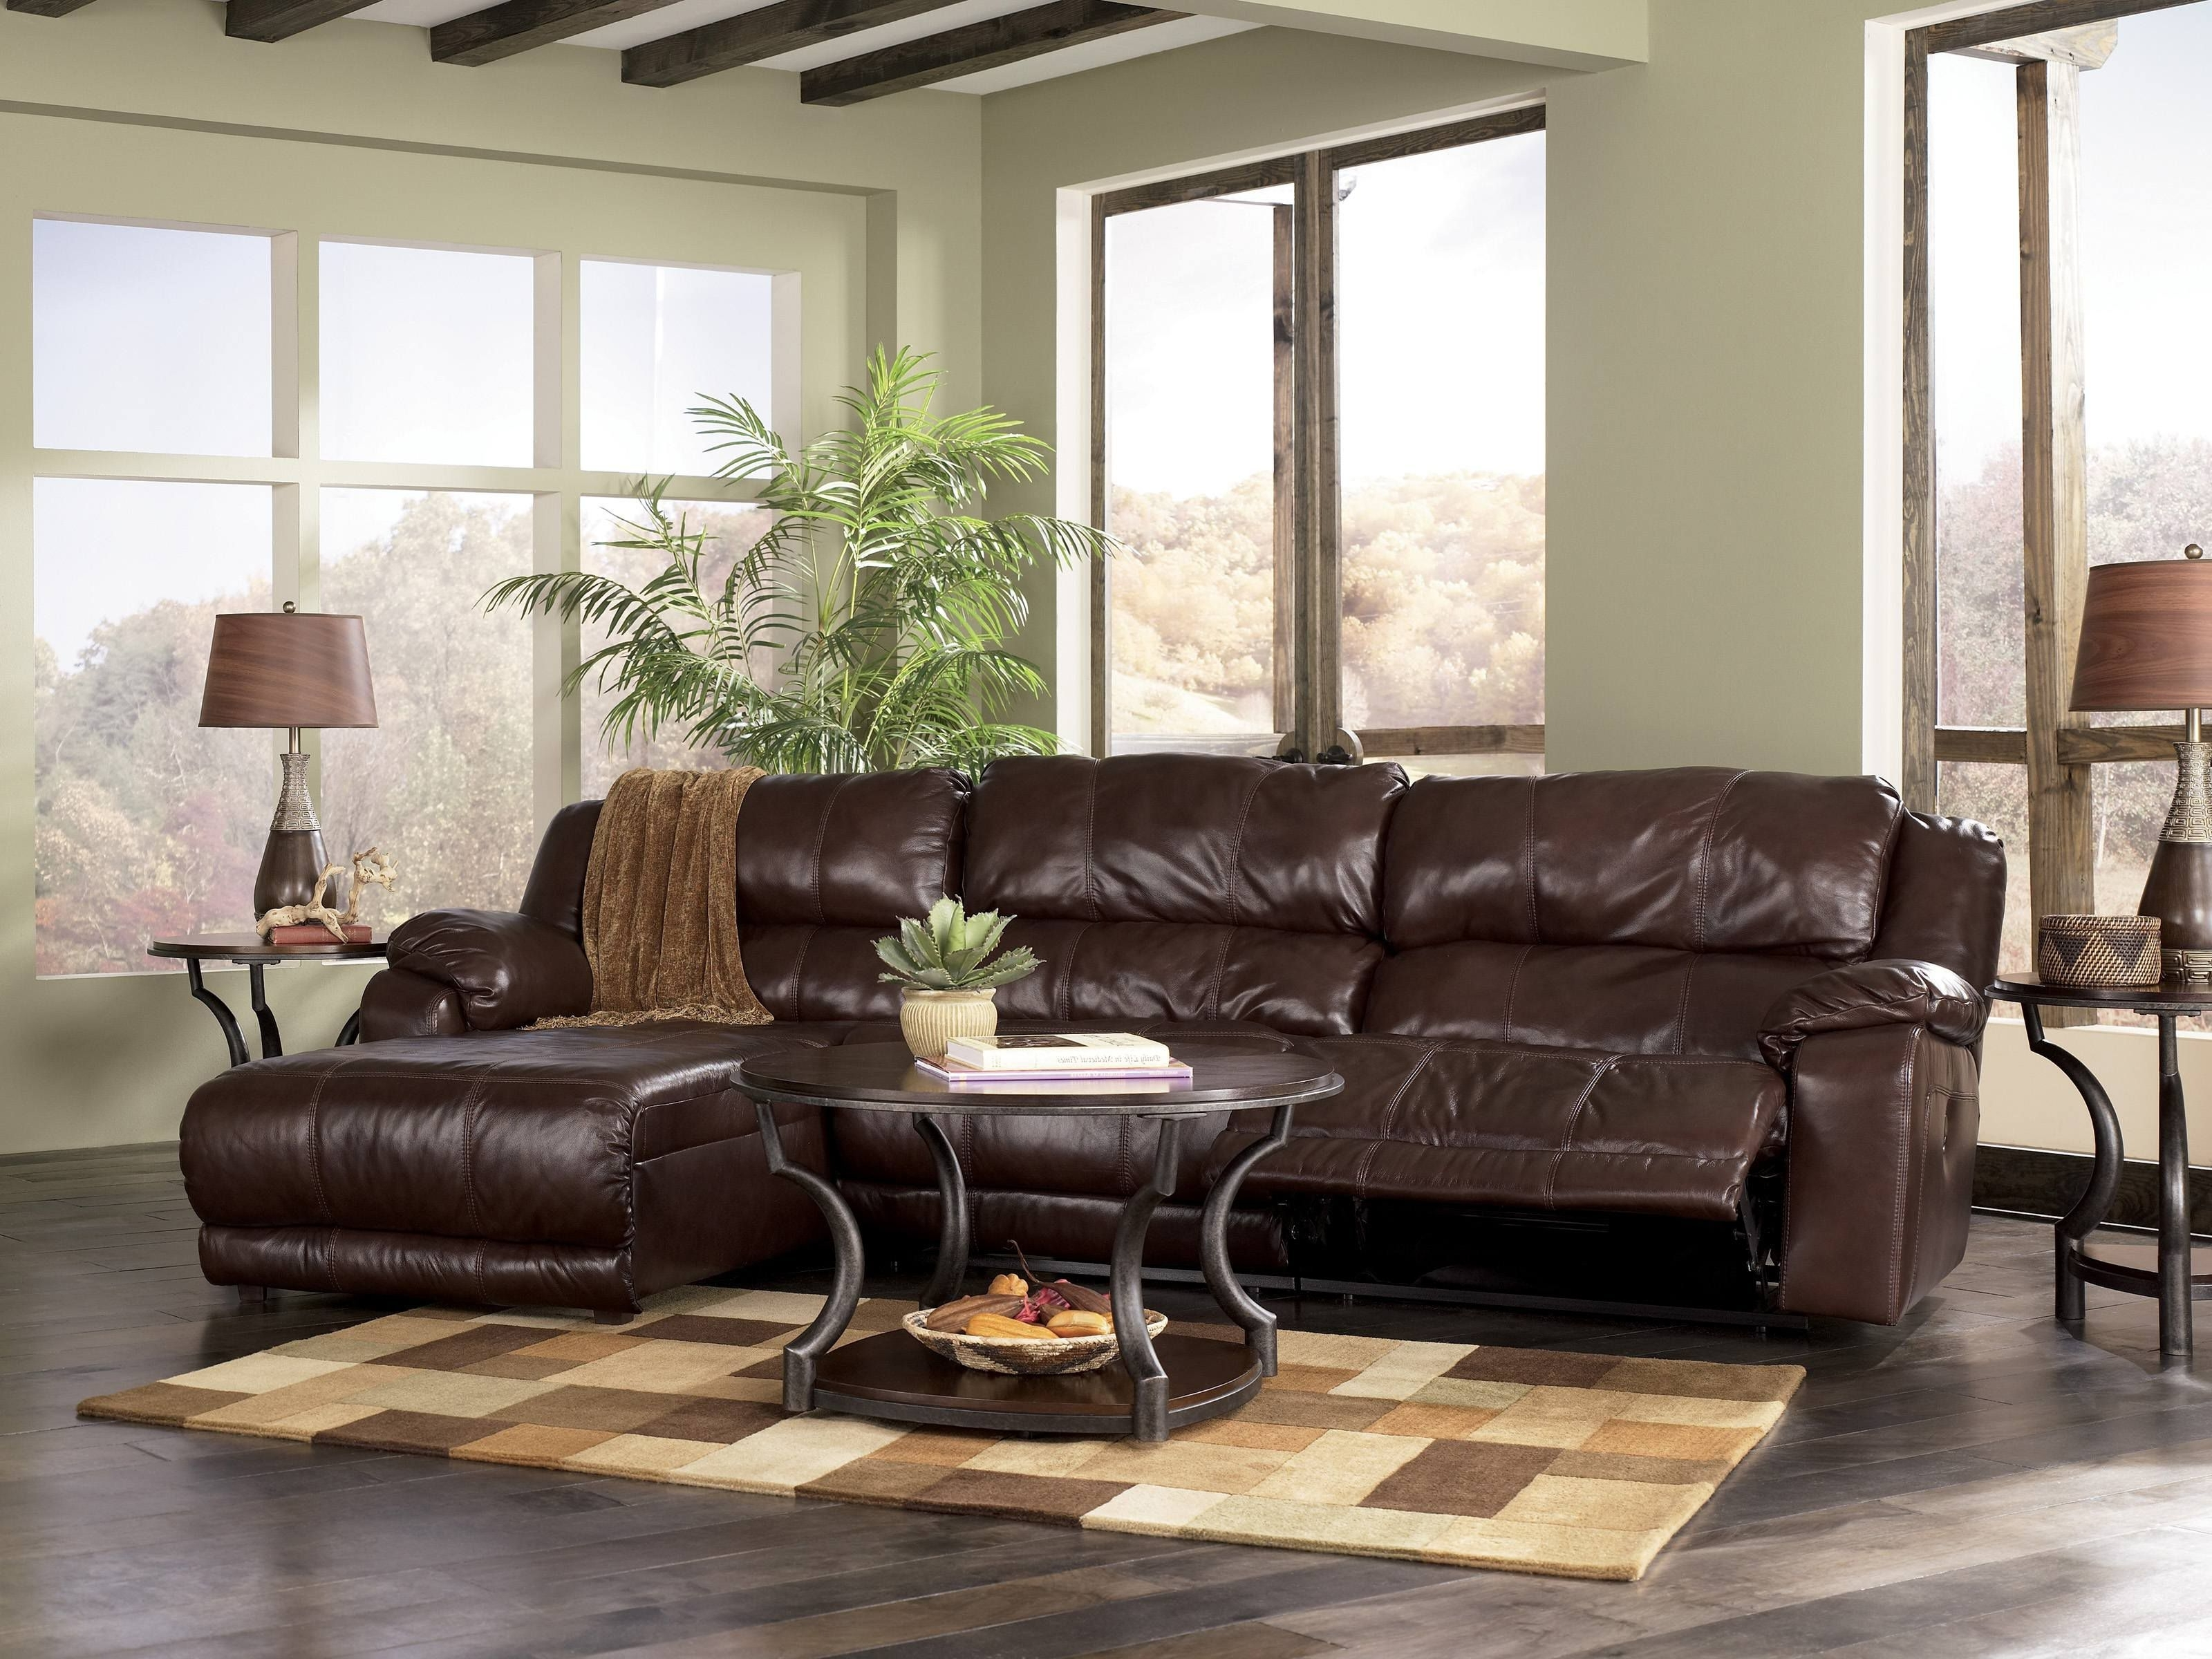 2018 Braxton Sectional Sofas Intended For Sectional Sofas With Recliners (View 11 of 20)